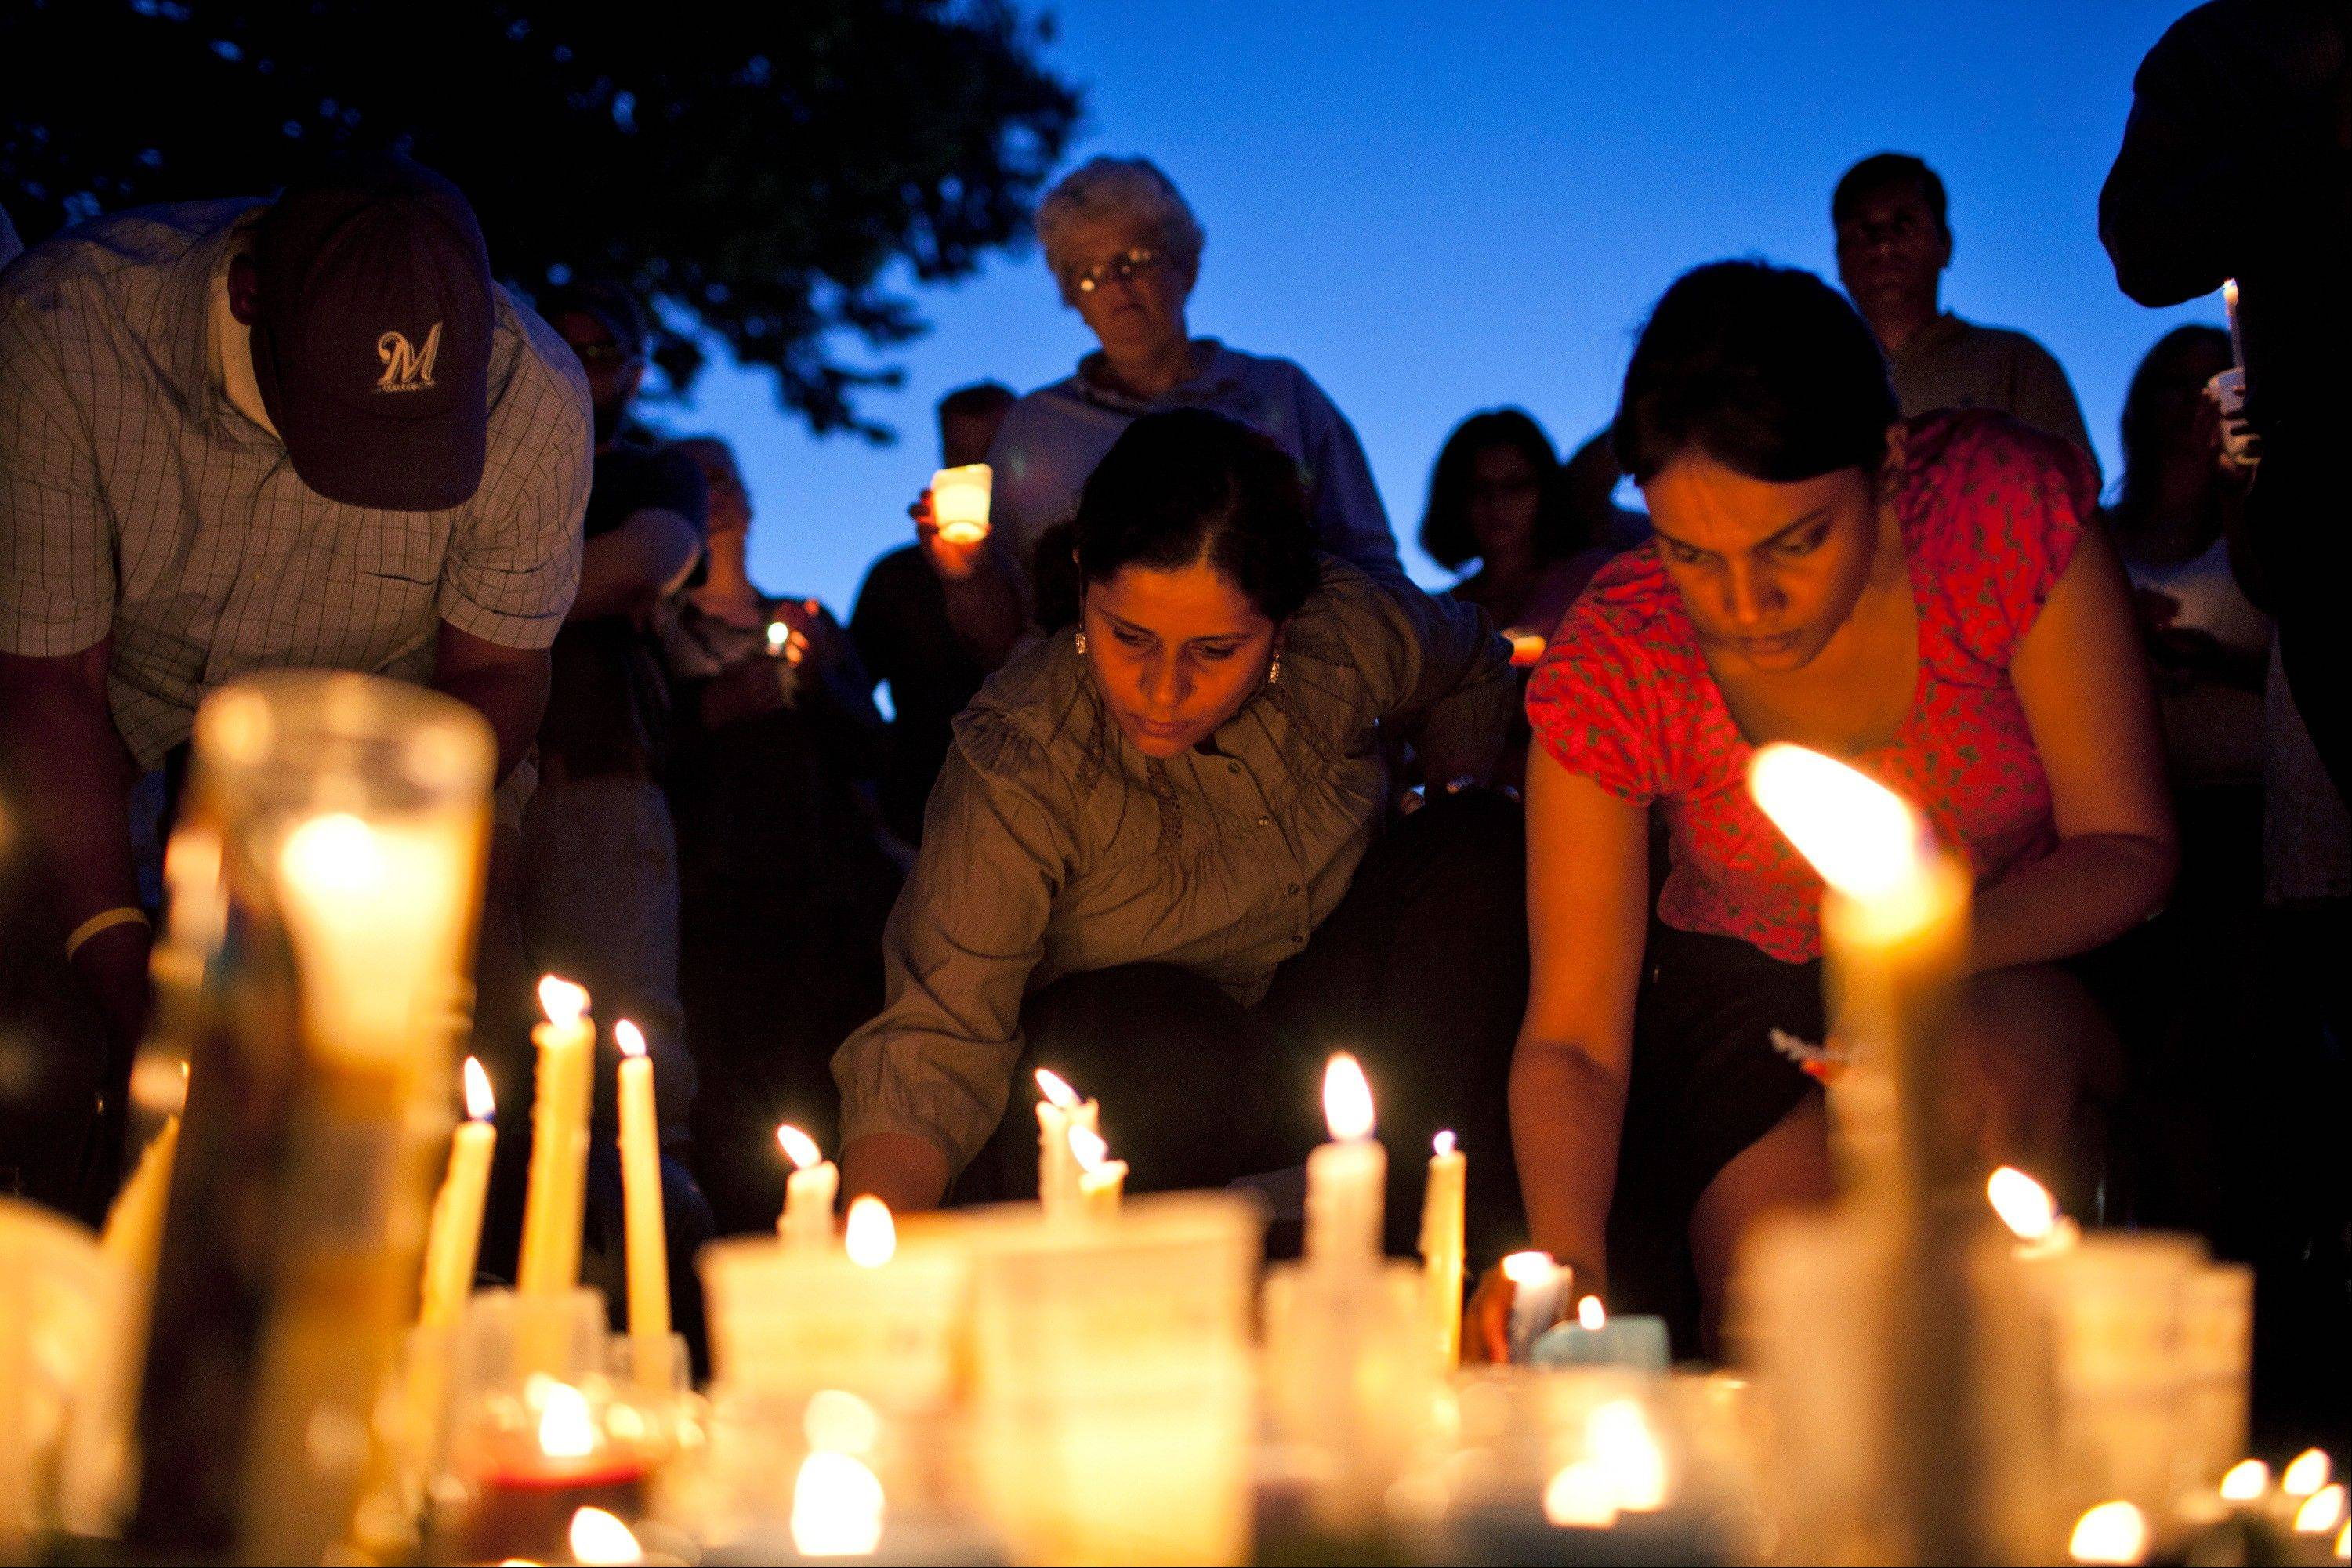 Mourners gather at a candlelight vigil for the victims of the Sikh Temple of Wisconsin shooting Sunday at Cathedral Square in Milwaukee. A gunman killed six people at the suburban Milwaukee temple on Sunday in a rampage that left terrified congregants hiding in closets and others texting friends outside for help.